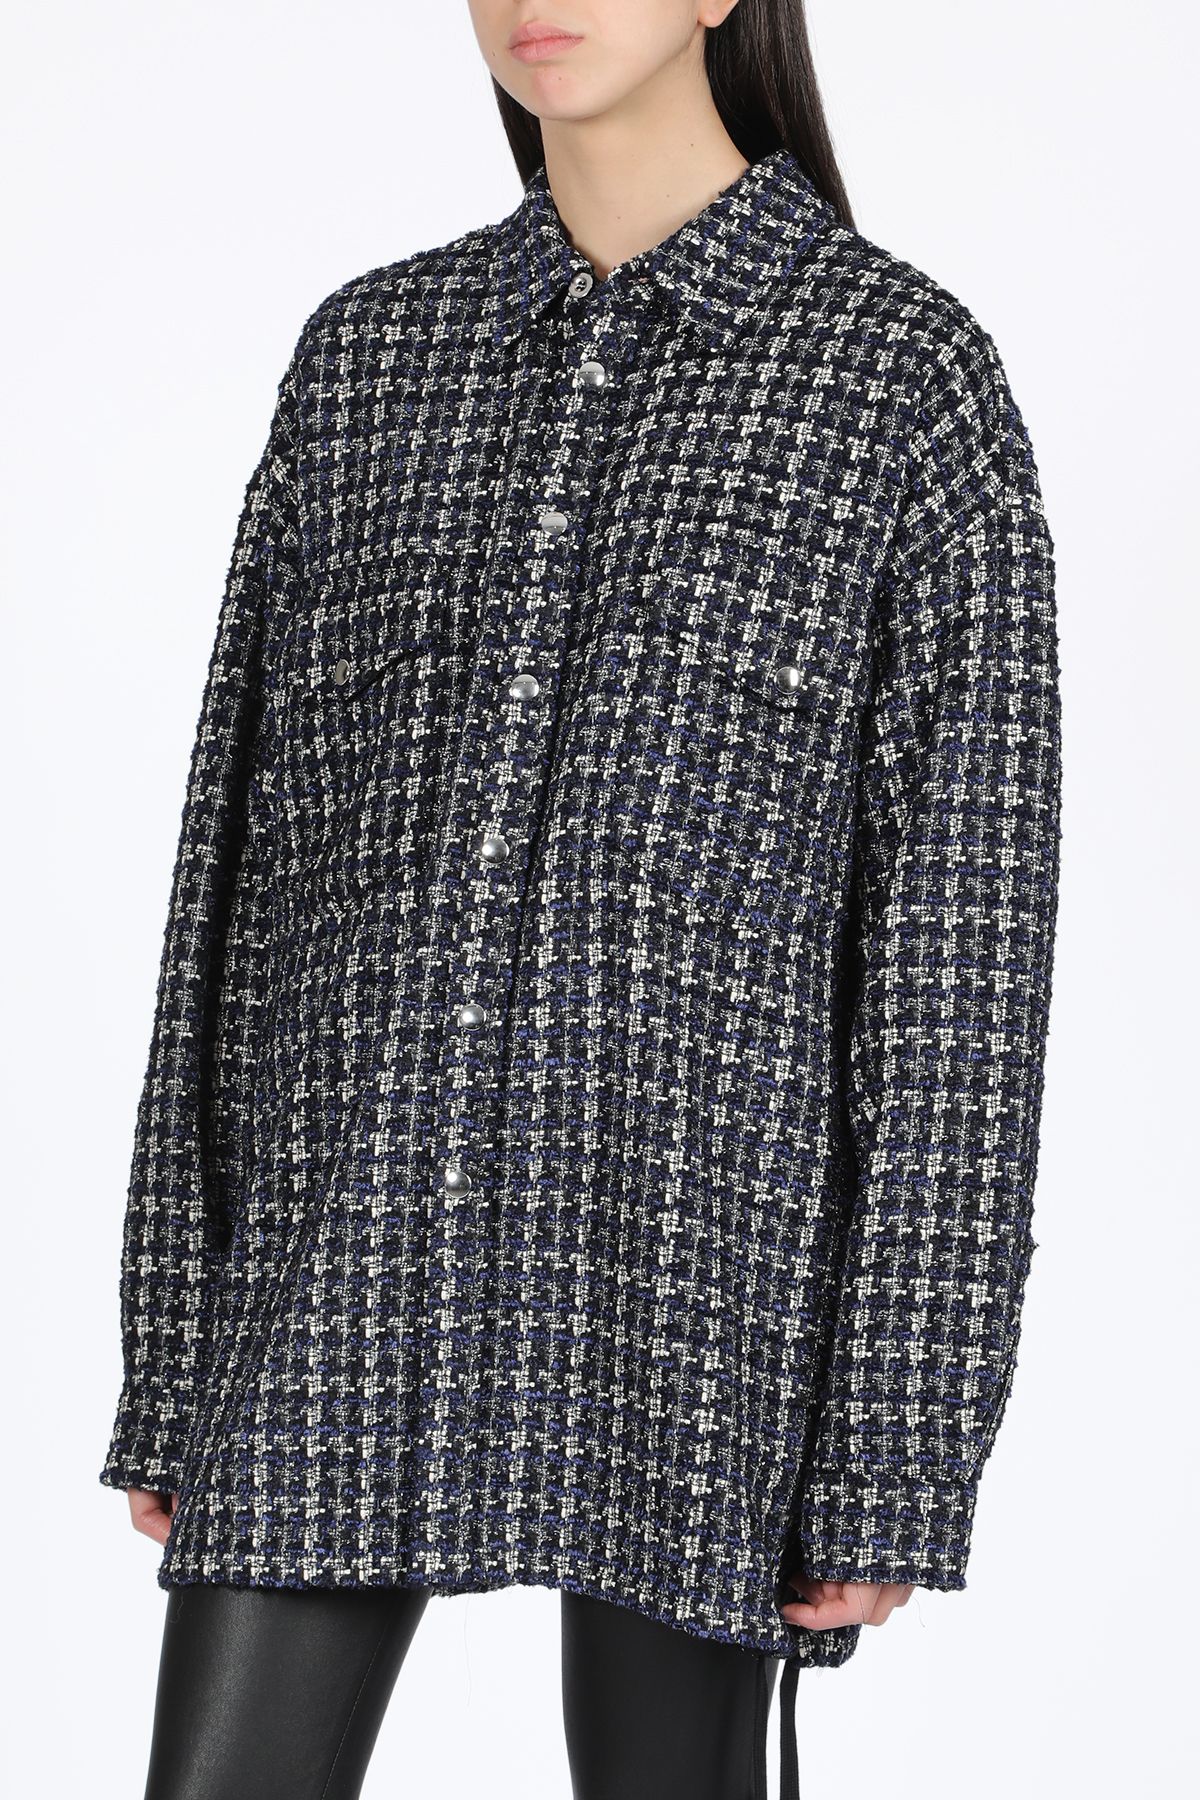 laced tweed overshirt FAITH CONNEXION   6   X1803T00434 LACED TWD OV SHBLACK/WHITE